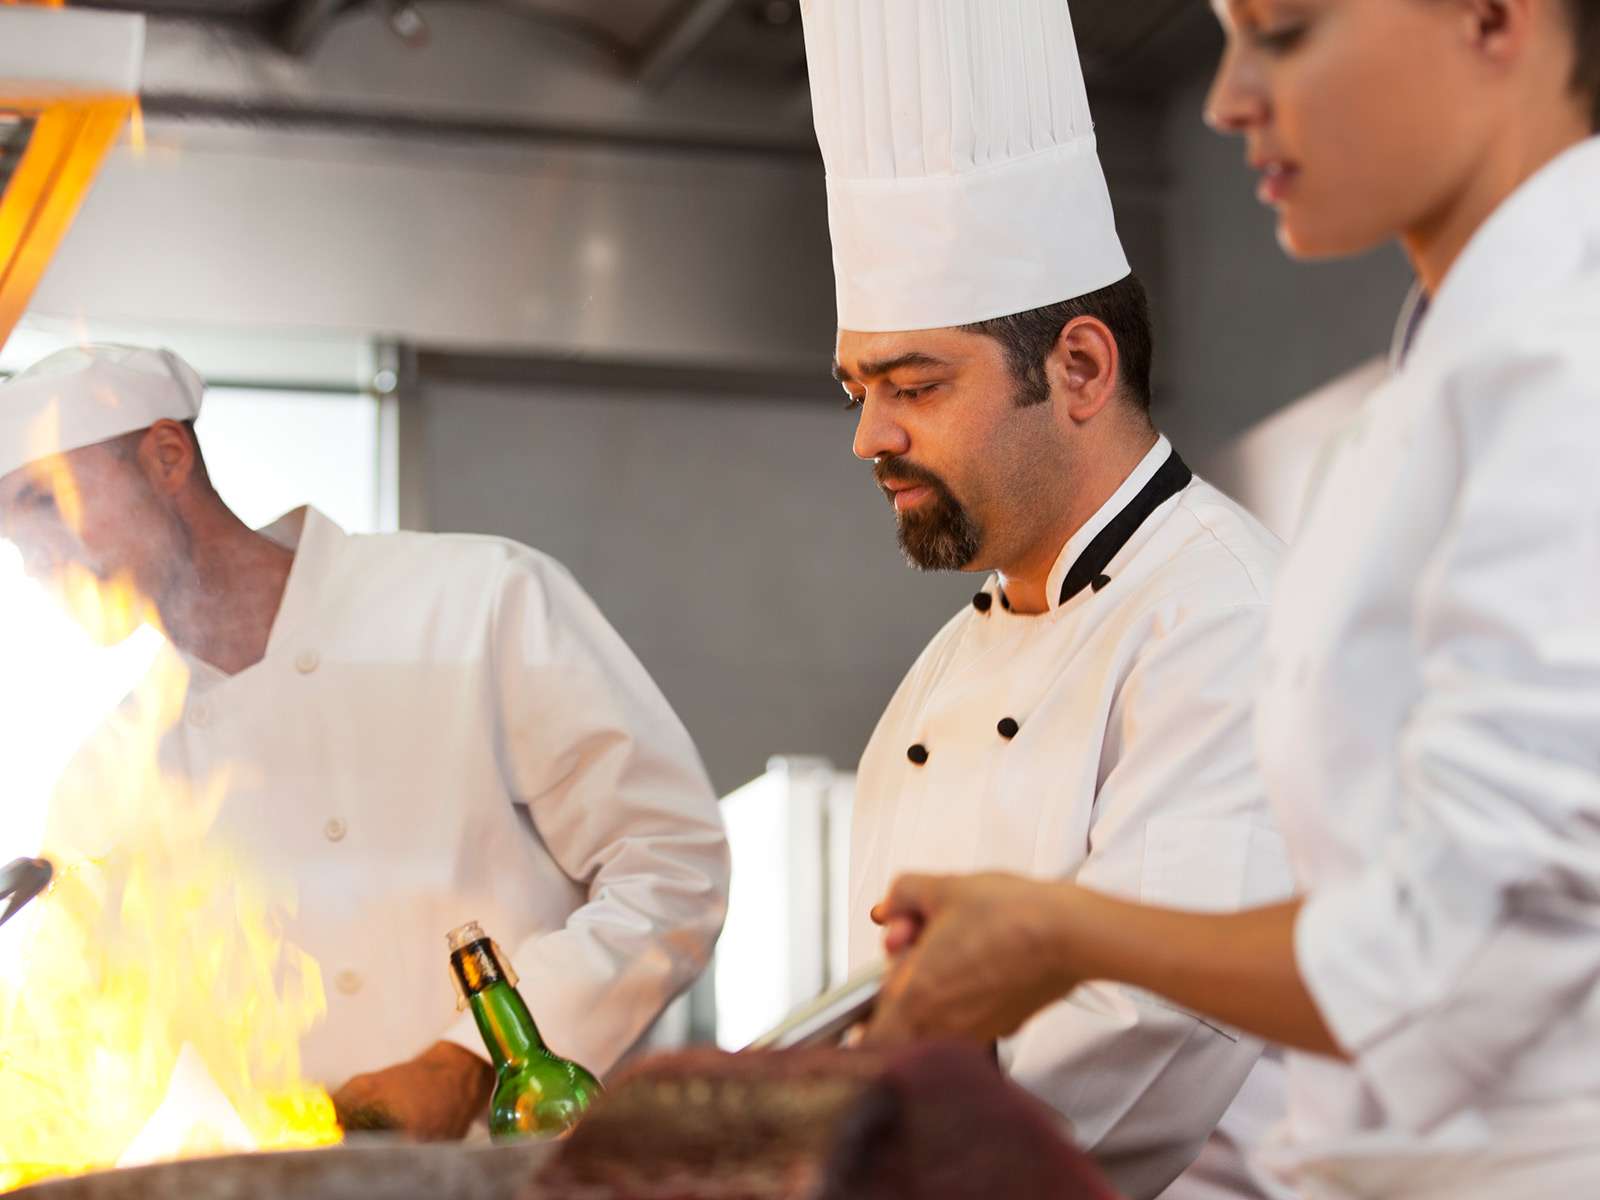 Chefs Set Aside 'An Hour for Us' to Talk About Better Kitchen Culture